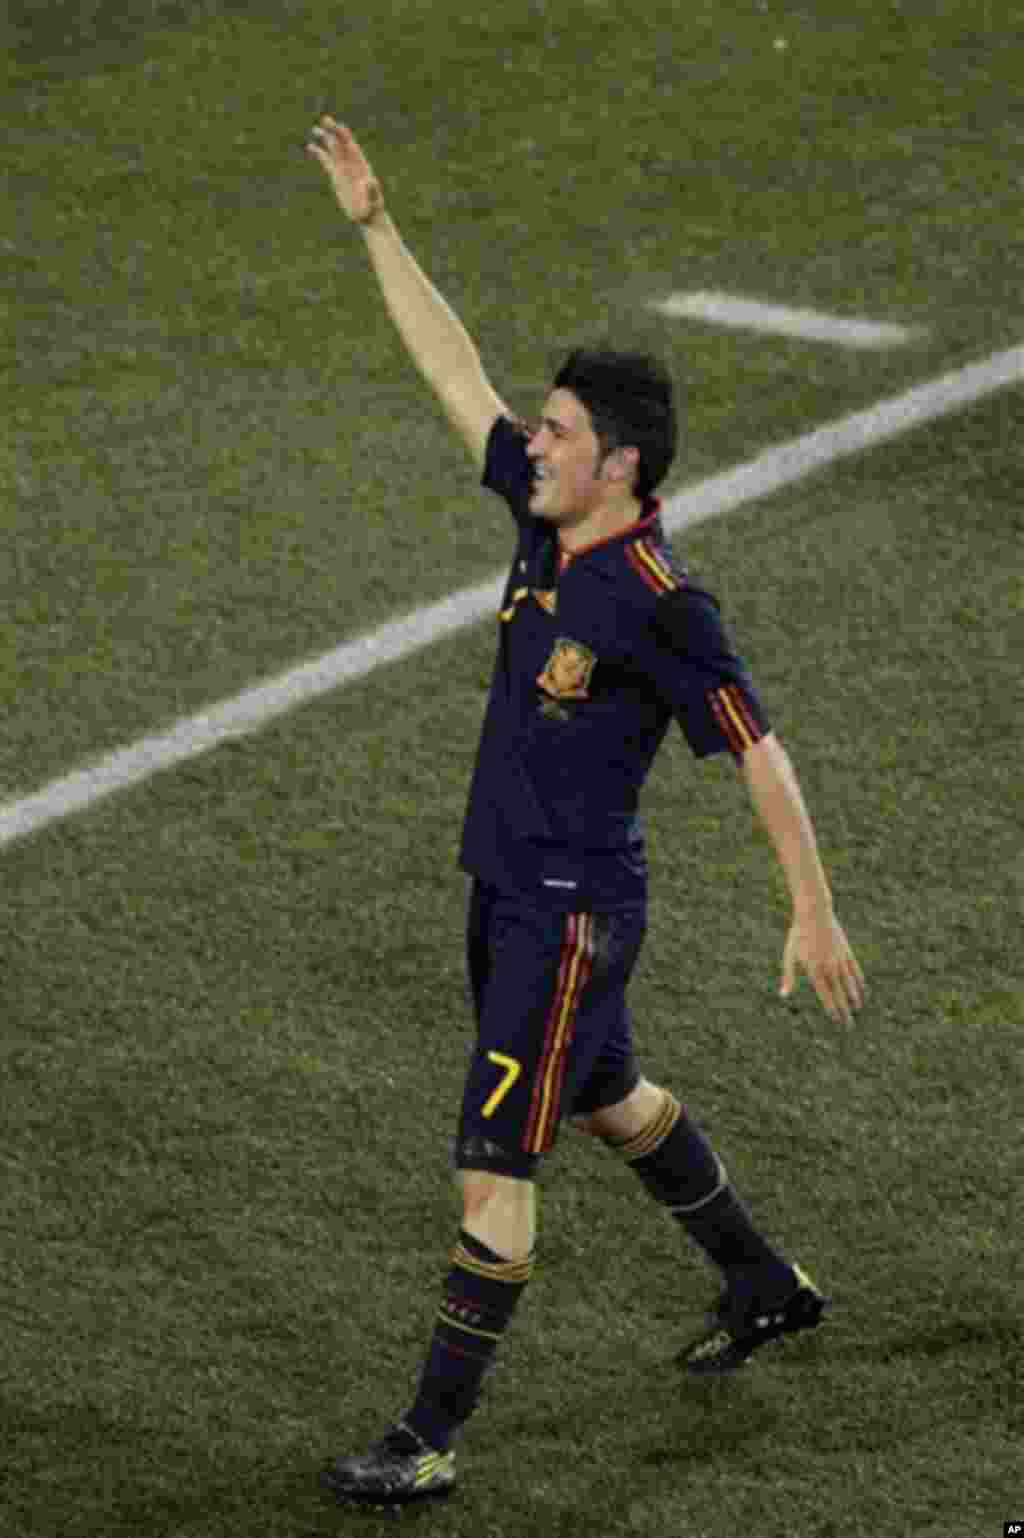 Spain's David Villa celebrates after scoring a goal during the World Cup quarterfinal soccer match between Paraguay and Spain at Ellis Park Stadium in Johannesburg, South Africa, Saturday, July 3, 2010. Spain won 1-0. (AP Photo/Themba Hadebe)